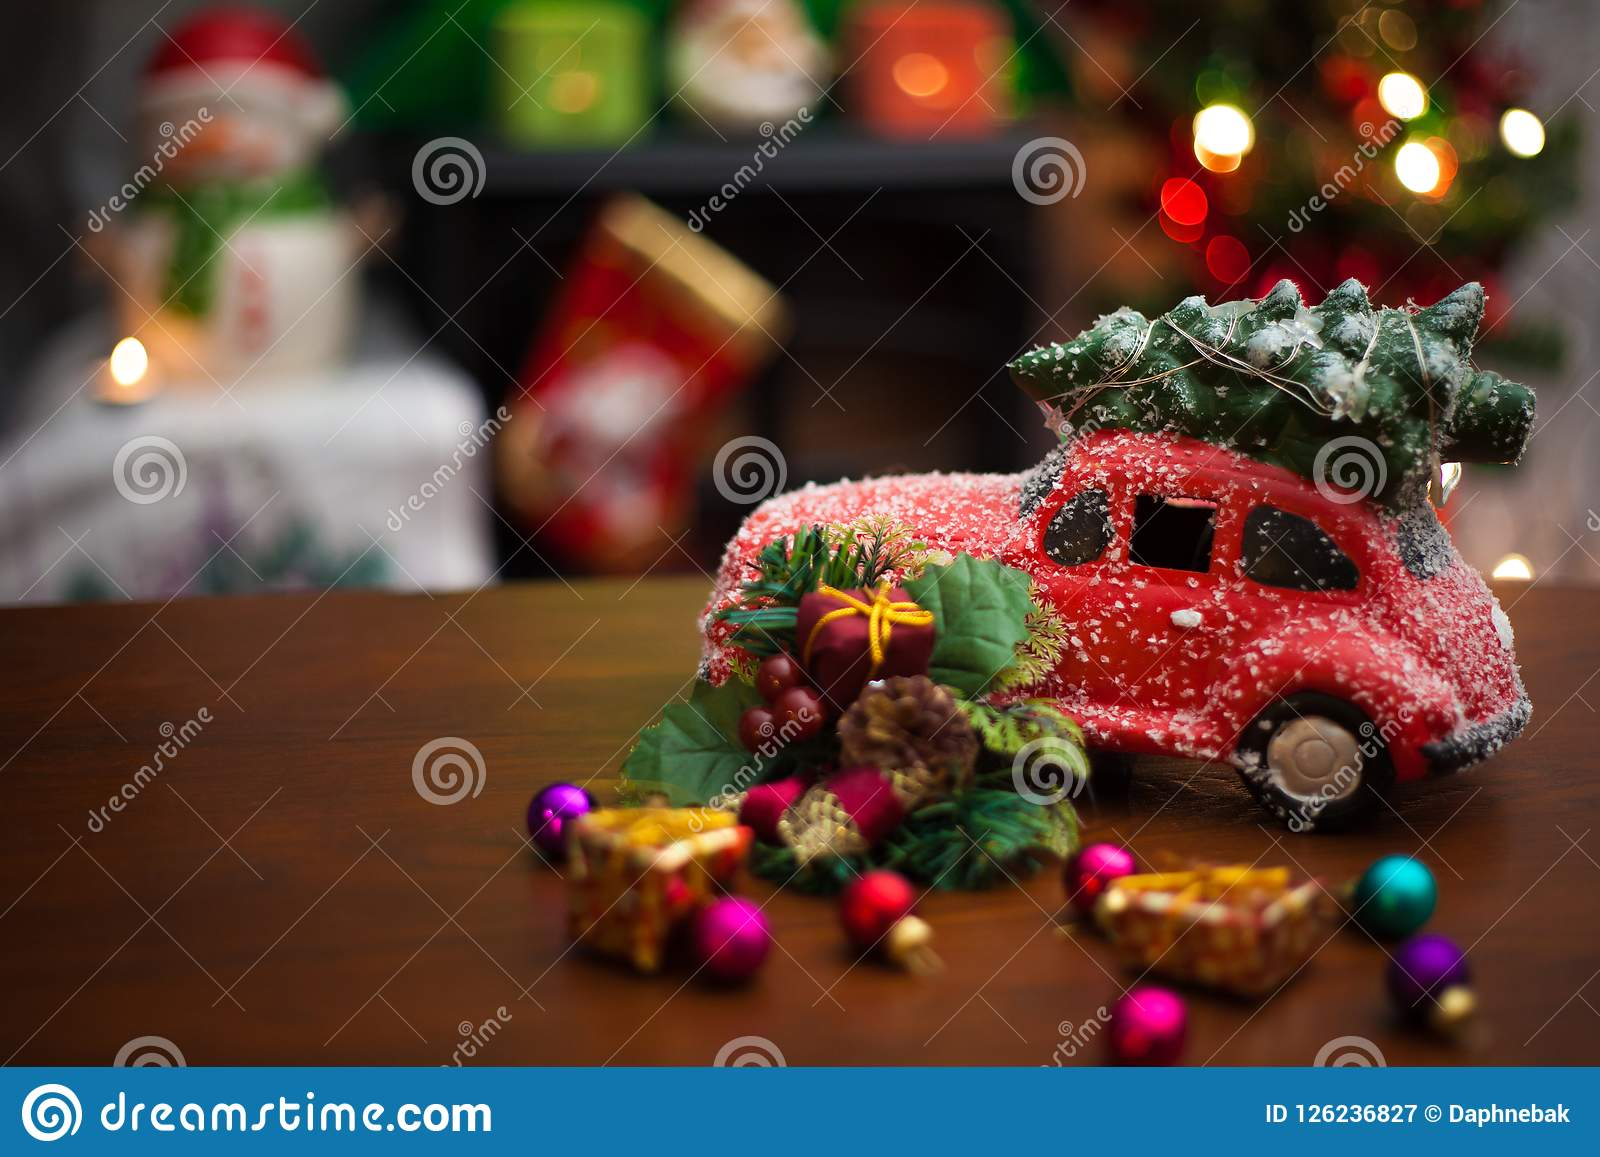 Red Car With Christmas Tree On Top Stock Image Image Of Festive Celebration 126236827